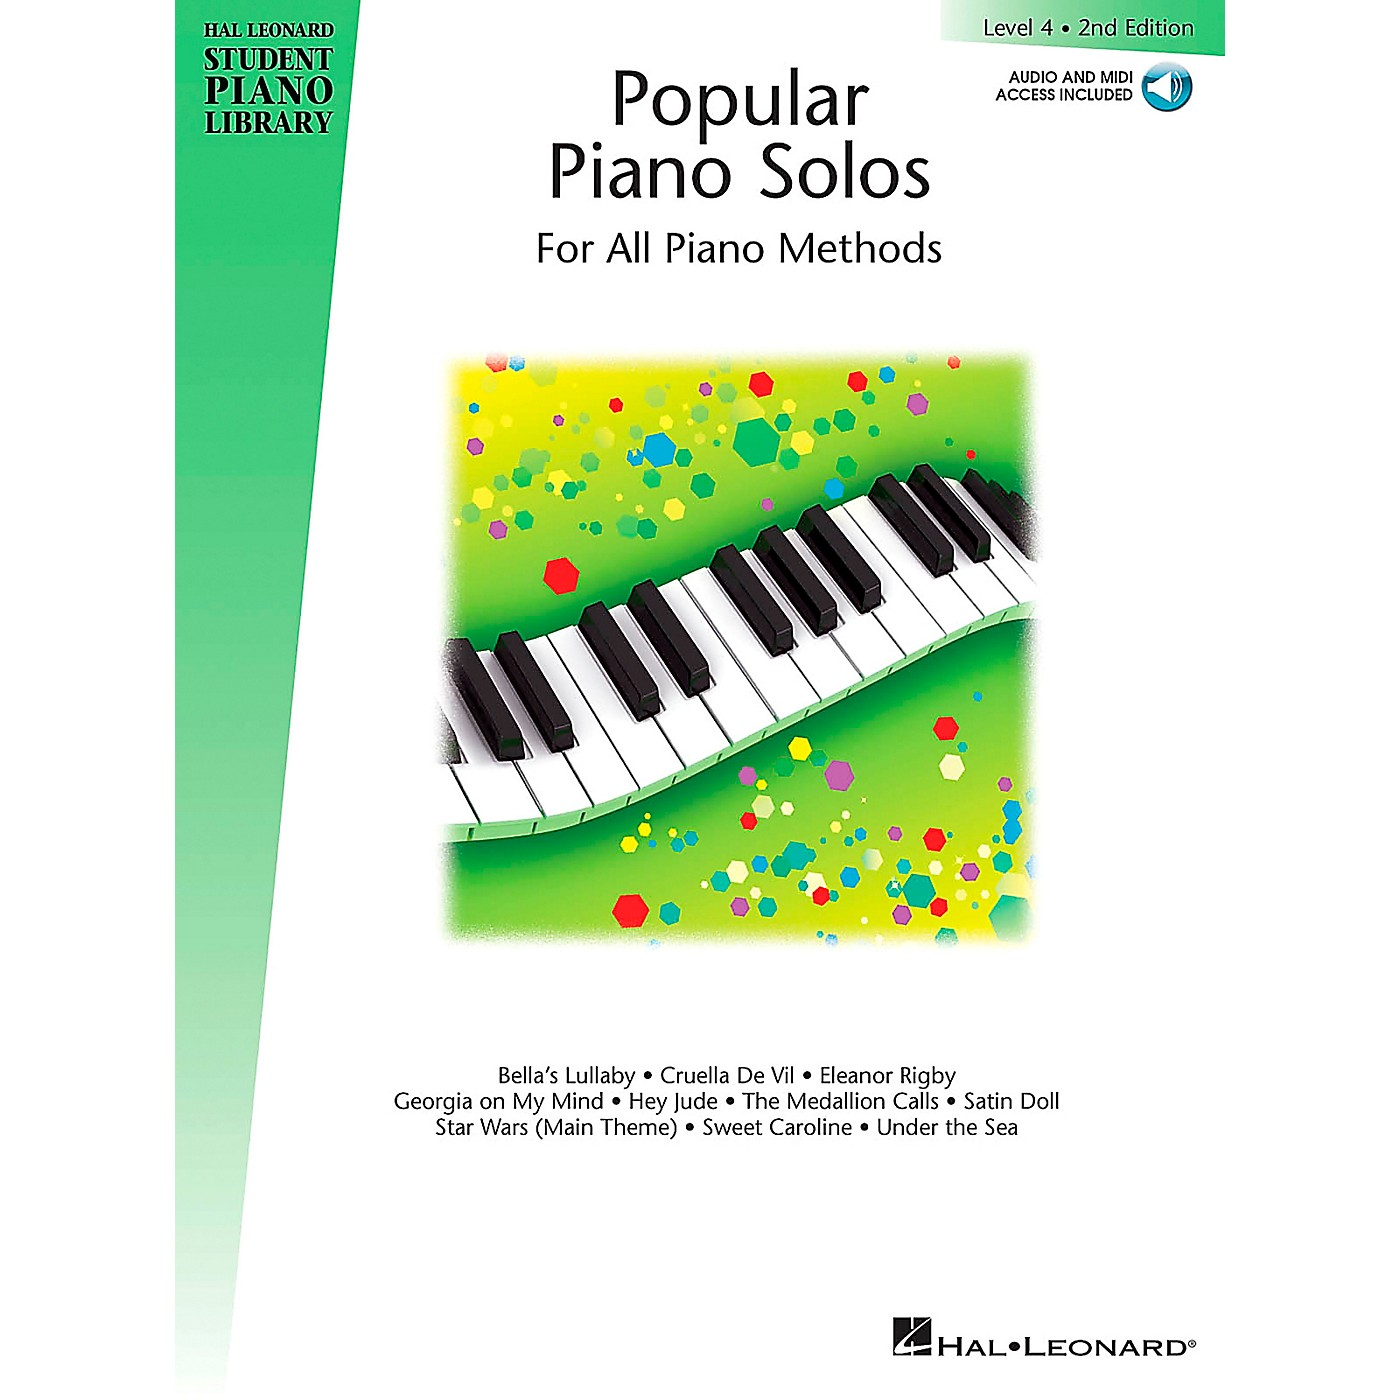 Hal Leonard Popular Piano Solos 2nd Edition - Level 4 Educational Piano Library Series Softcover with CD by Various thumbnail